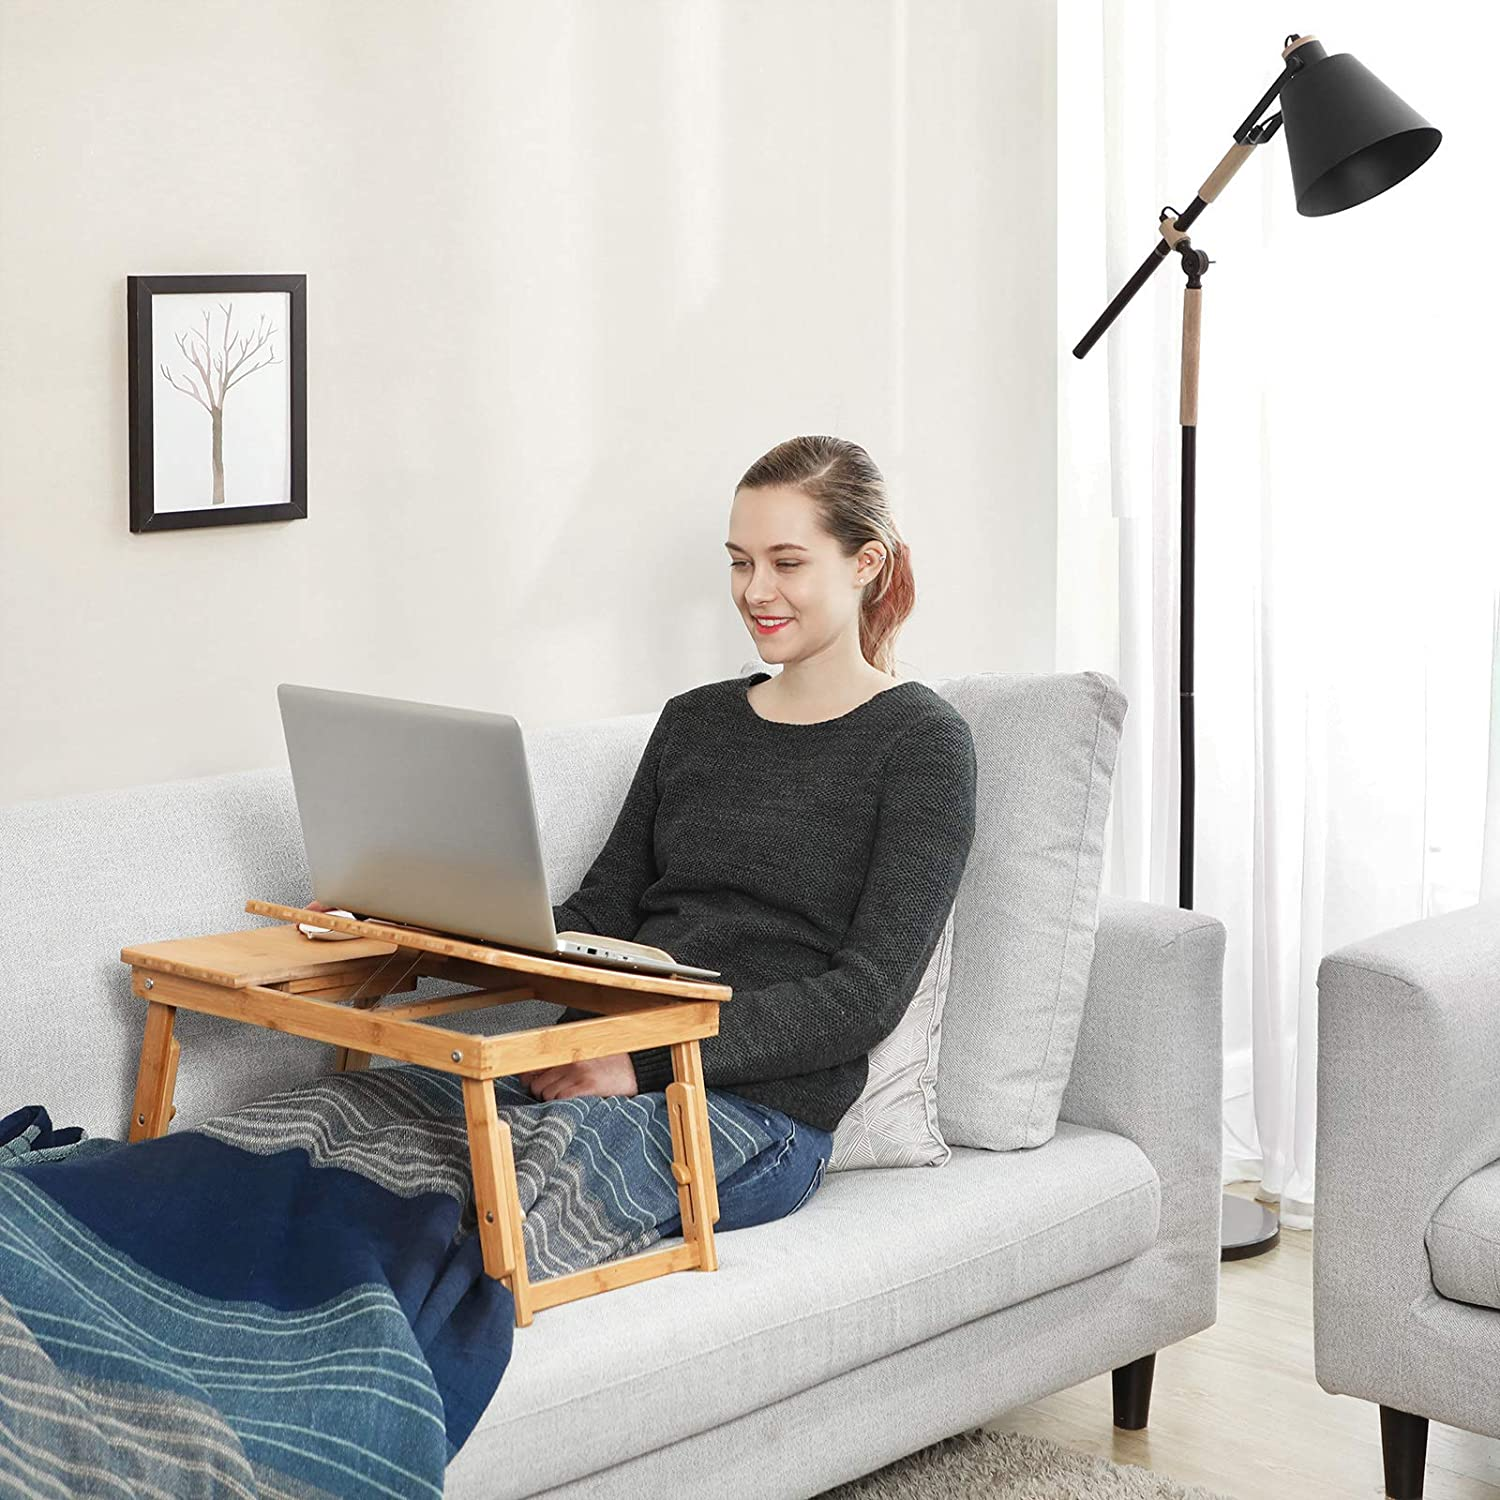 person using a lap desk on a couch